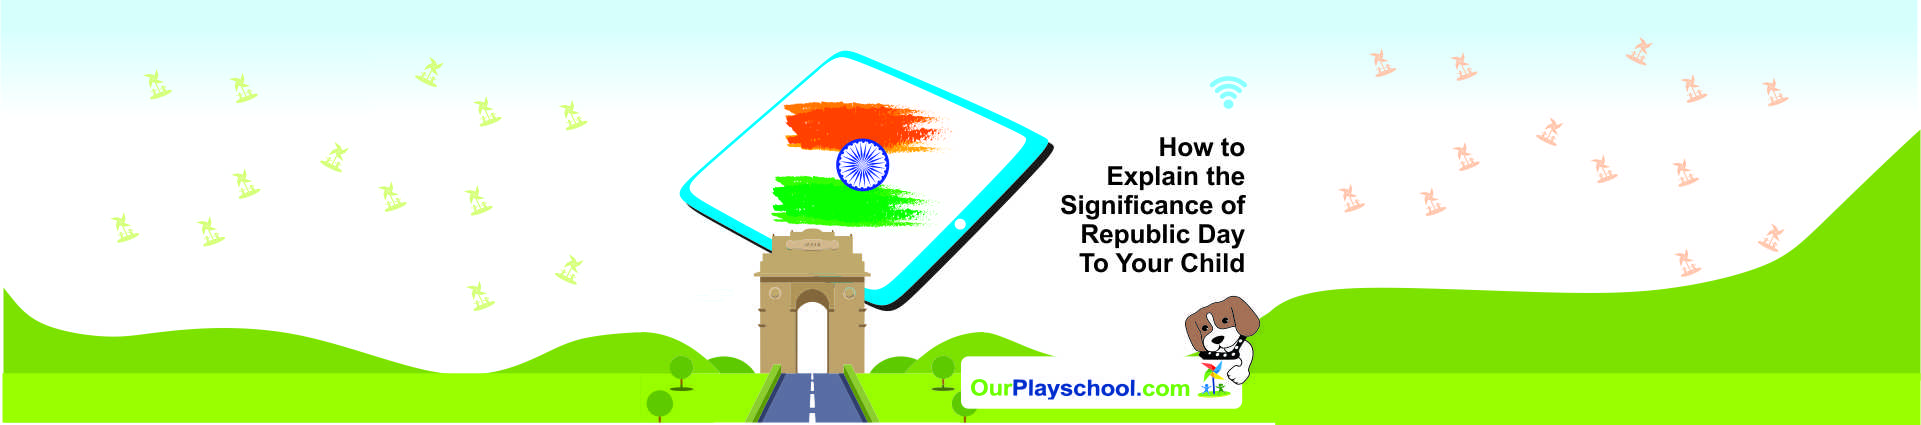 Significance of Republic Day to Your Child